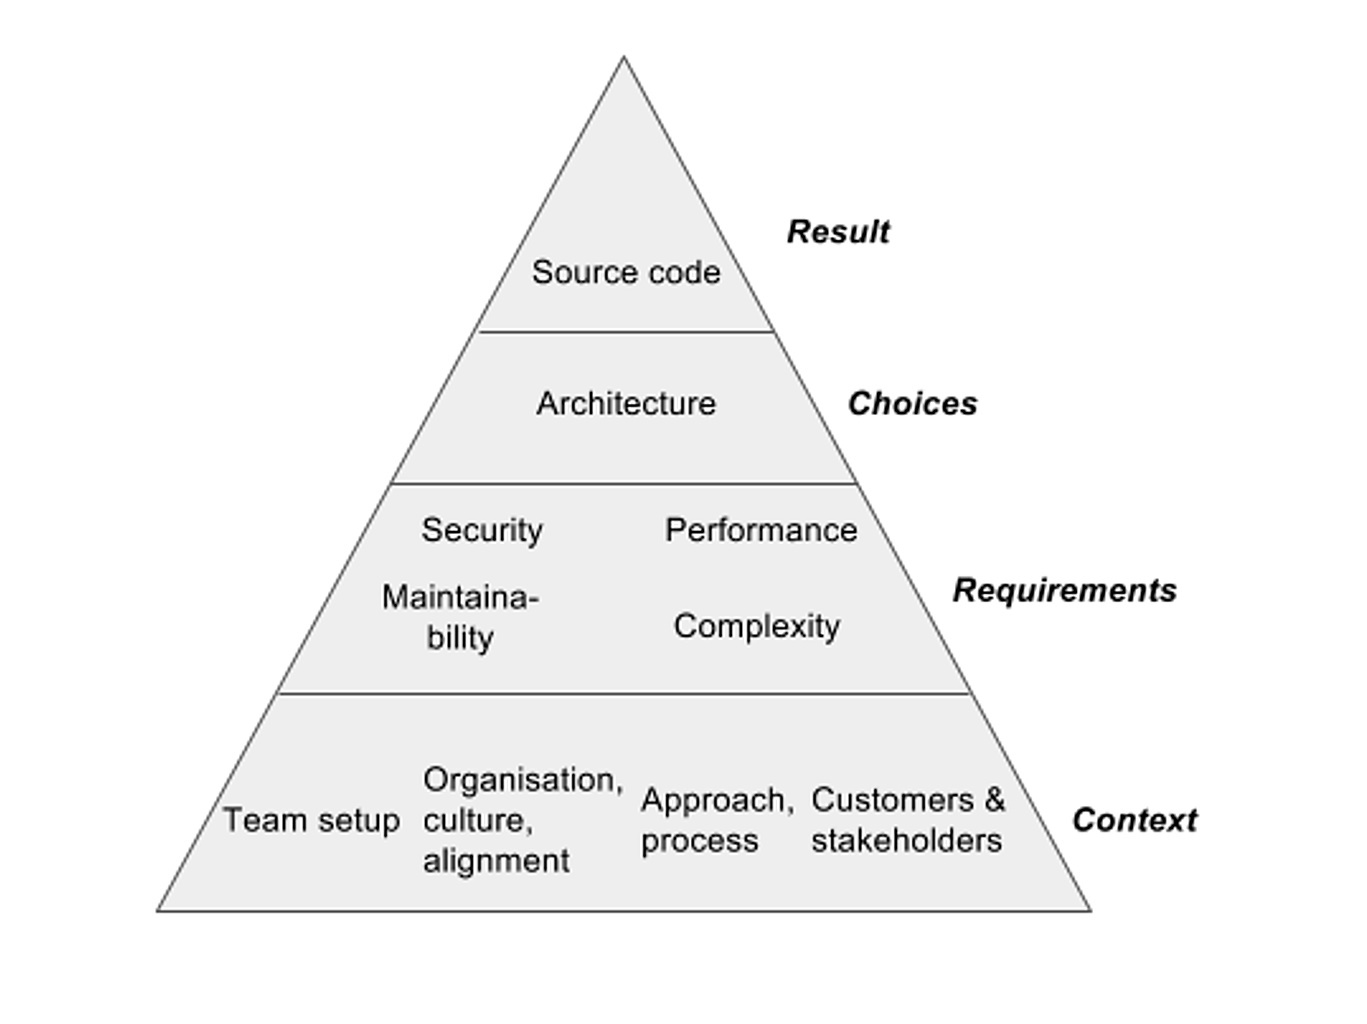 You can improve your software delivery process with a holistic perspective